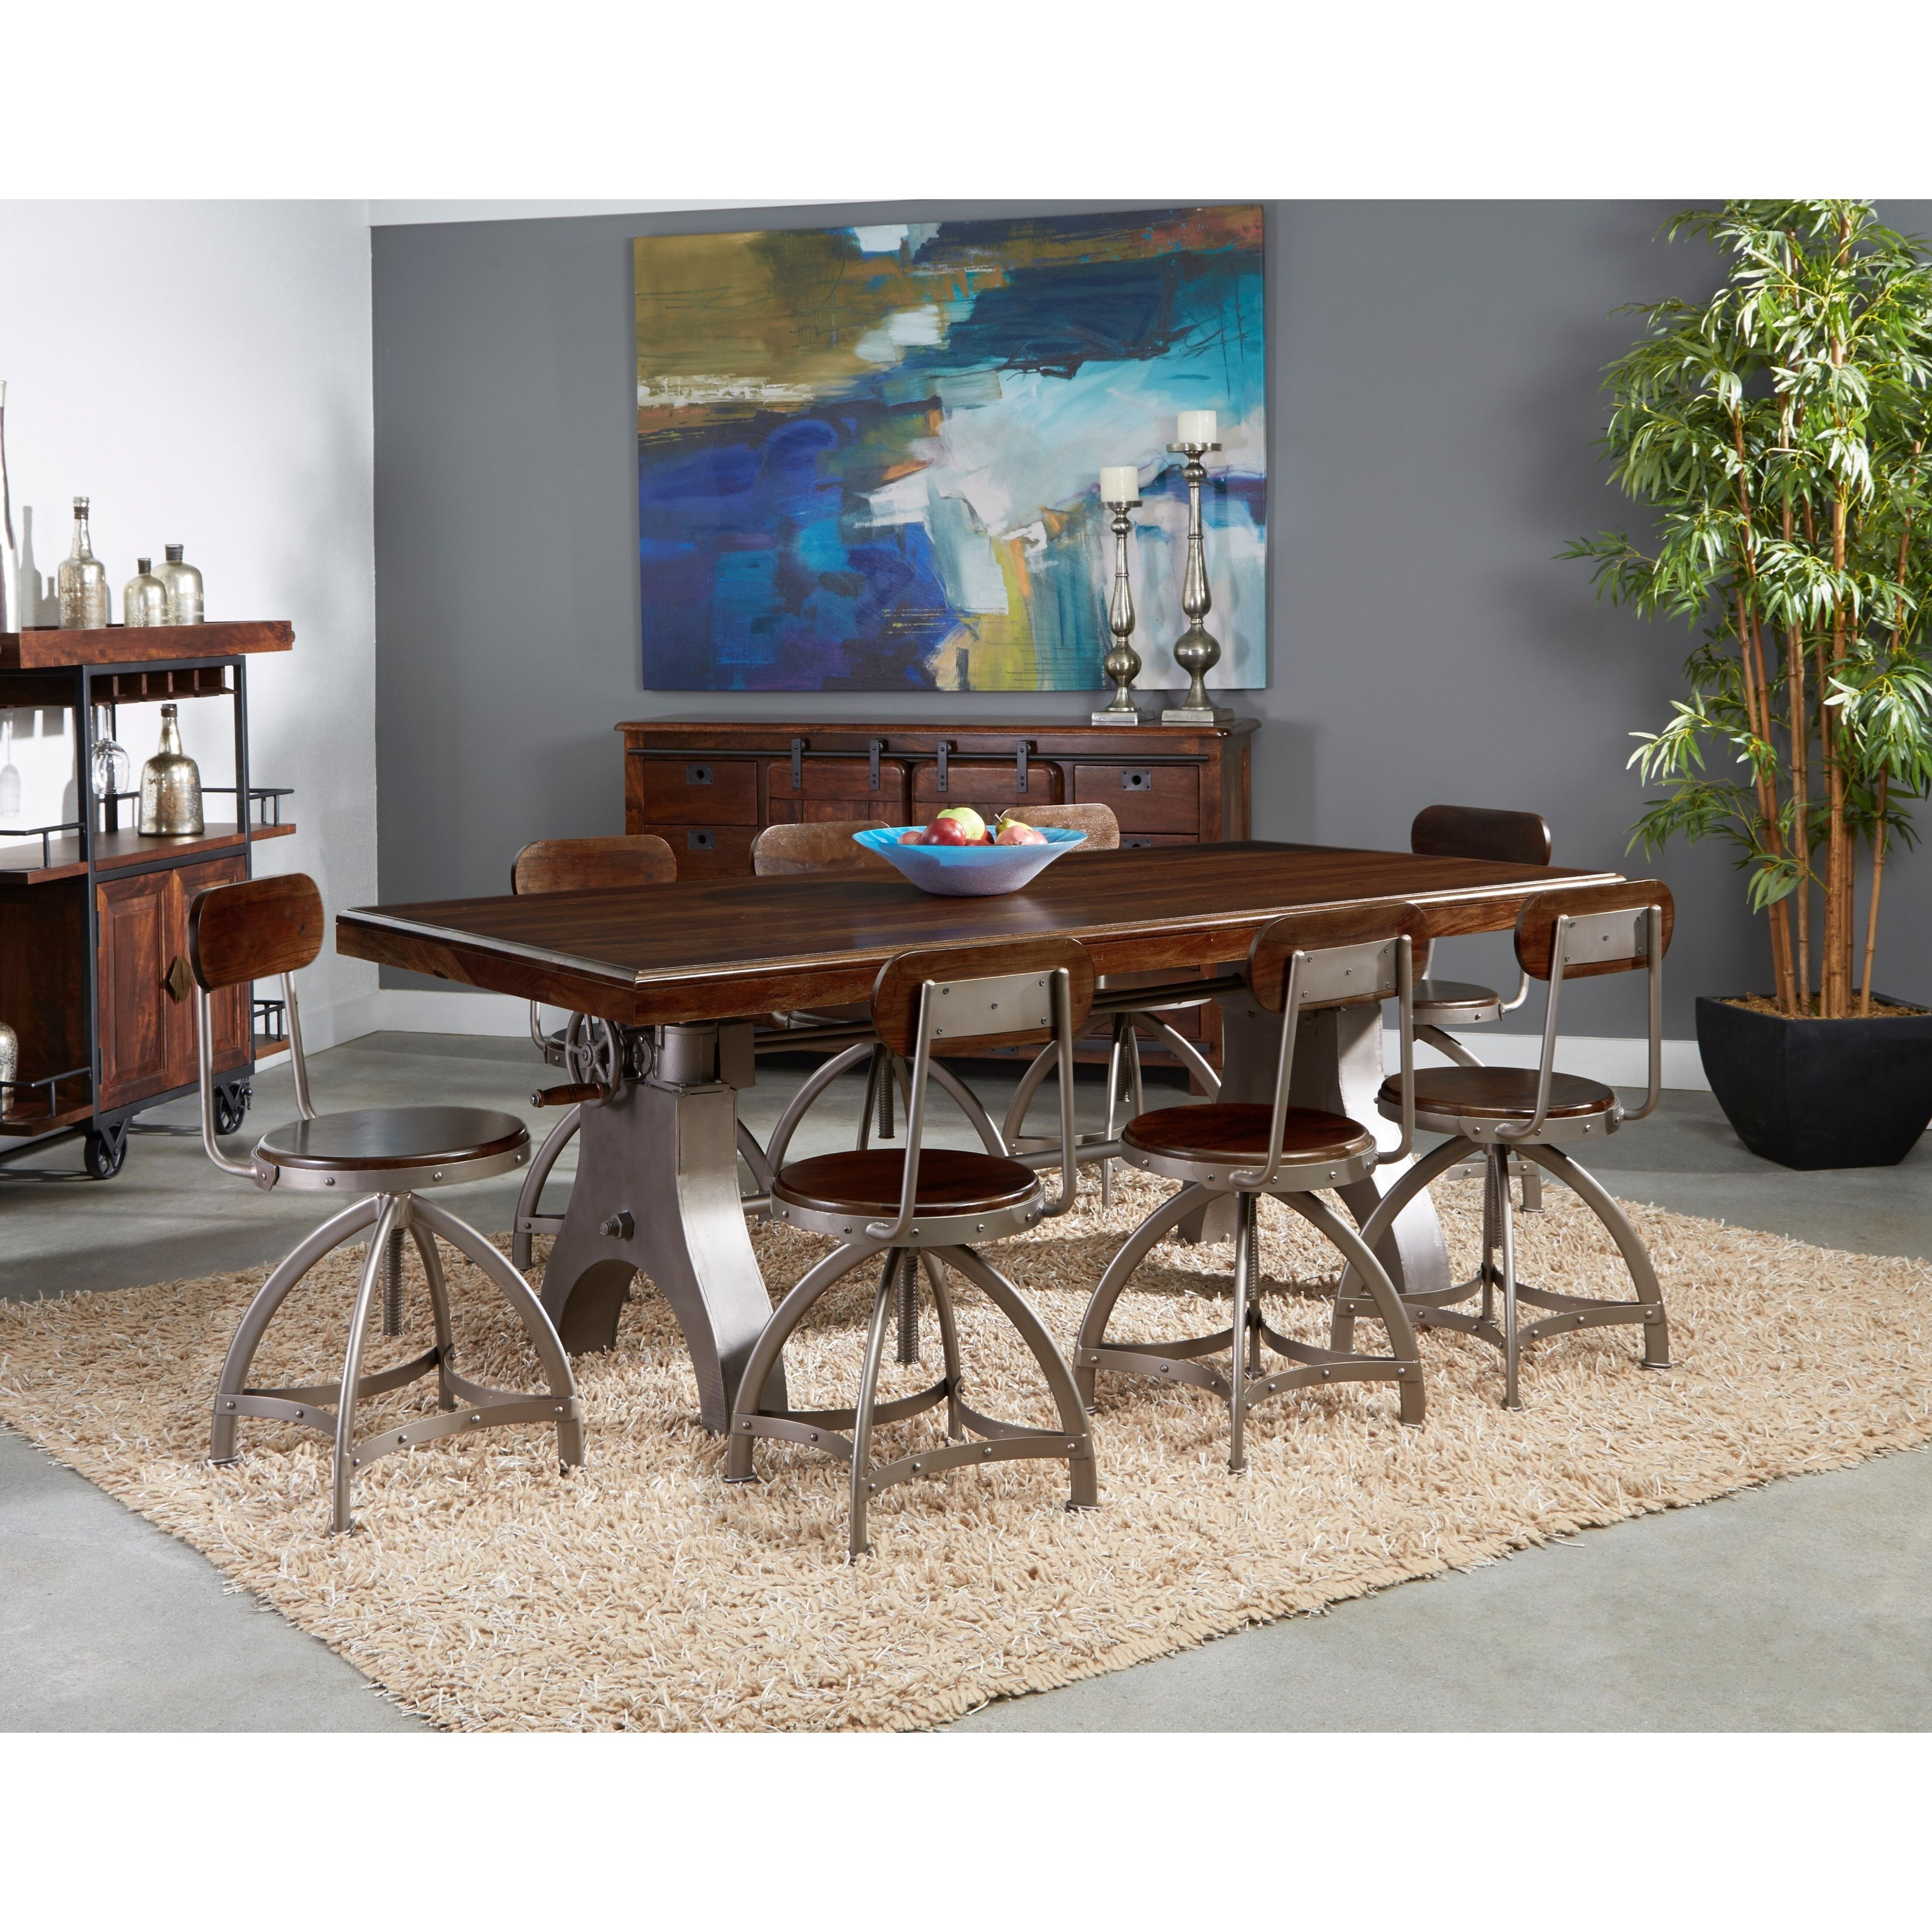 Tacoma 9-Piece Pub Table and Chair Set by Coast to Coast Imports at Baer's Furniture